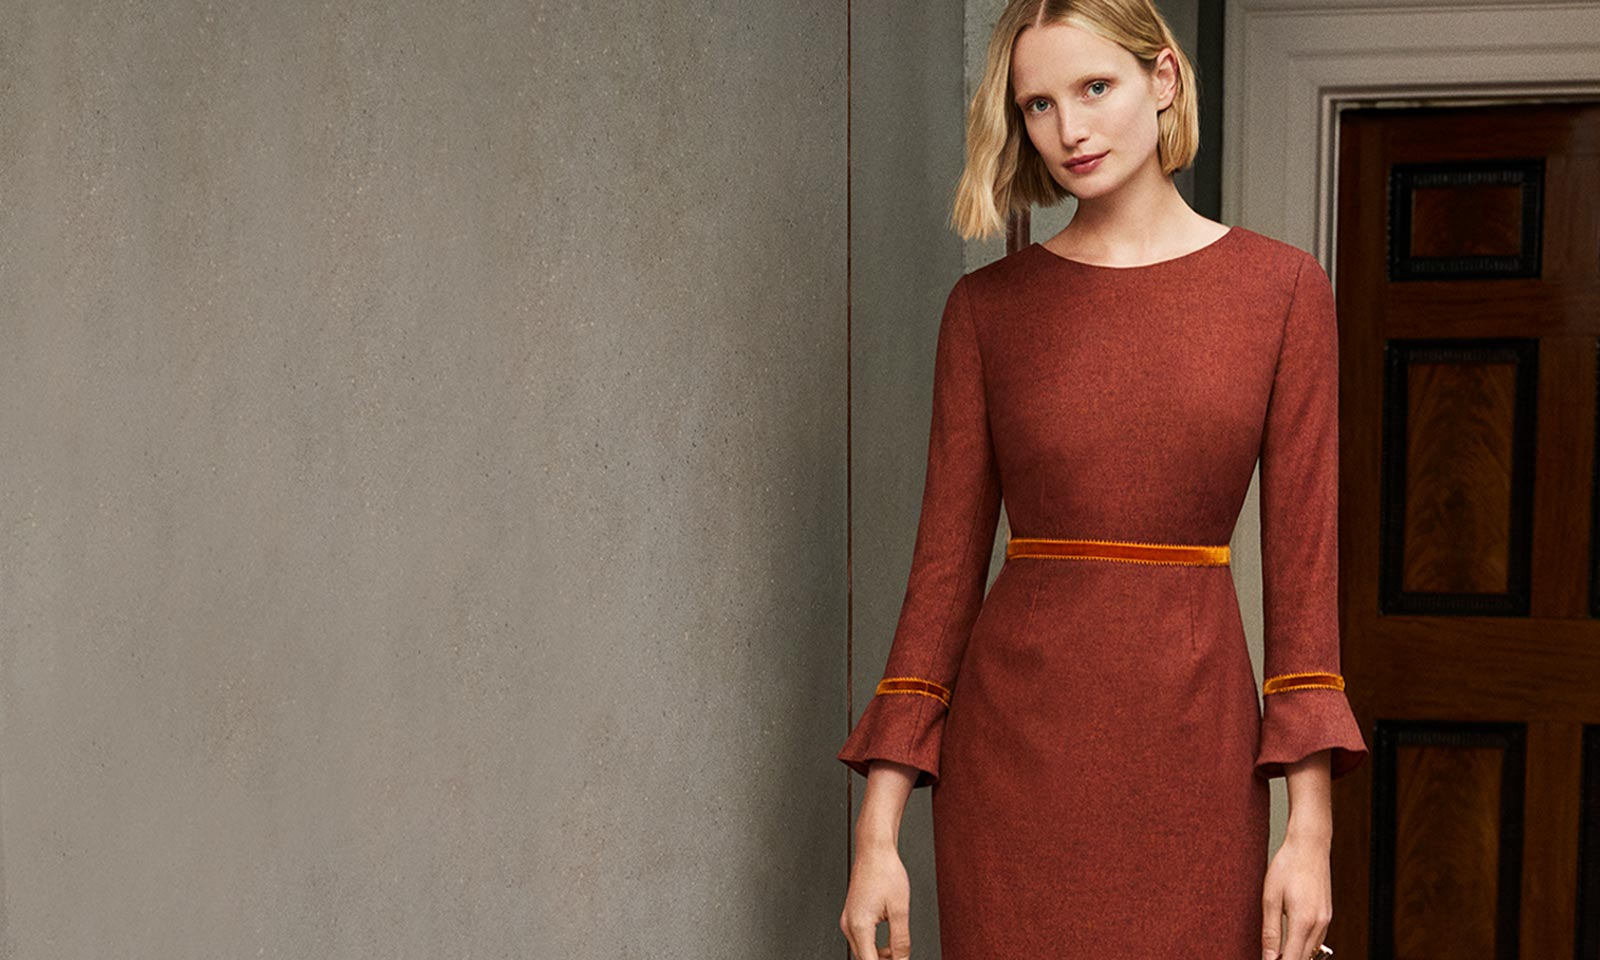 sale-dresses-further-reductions